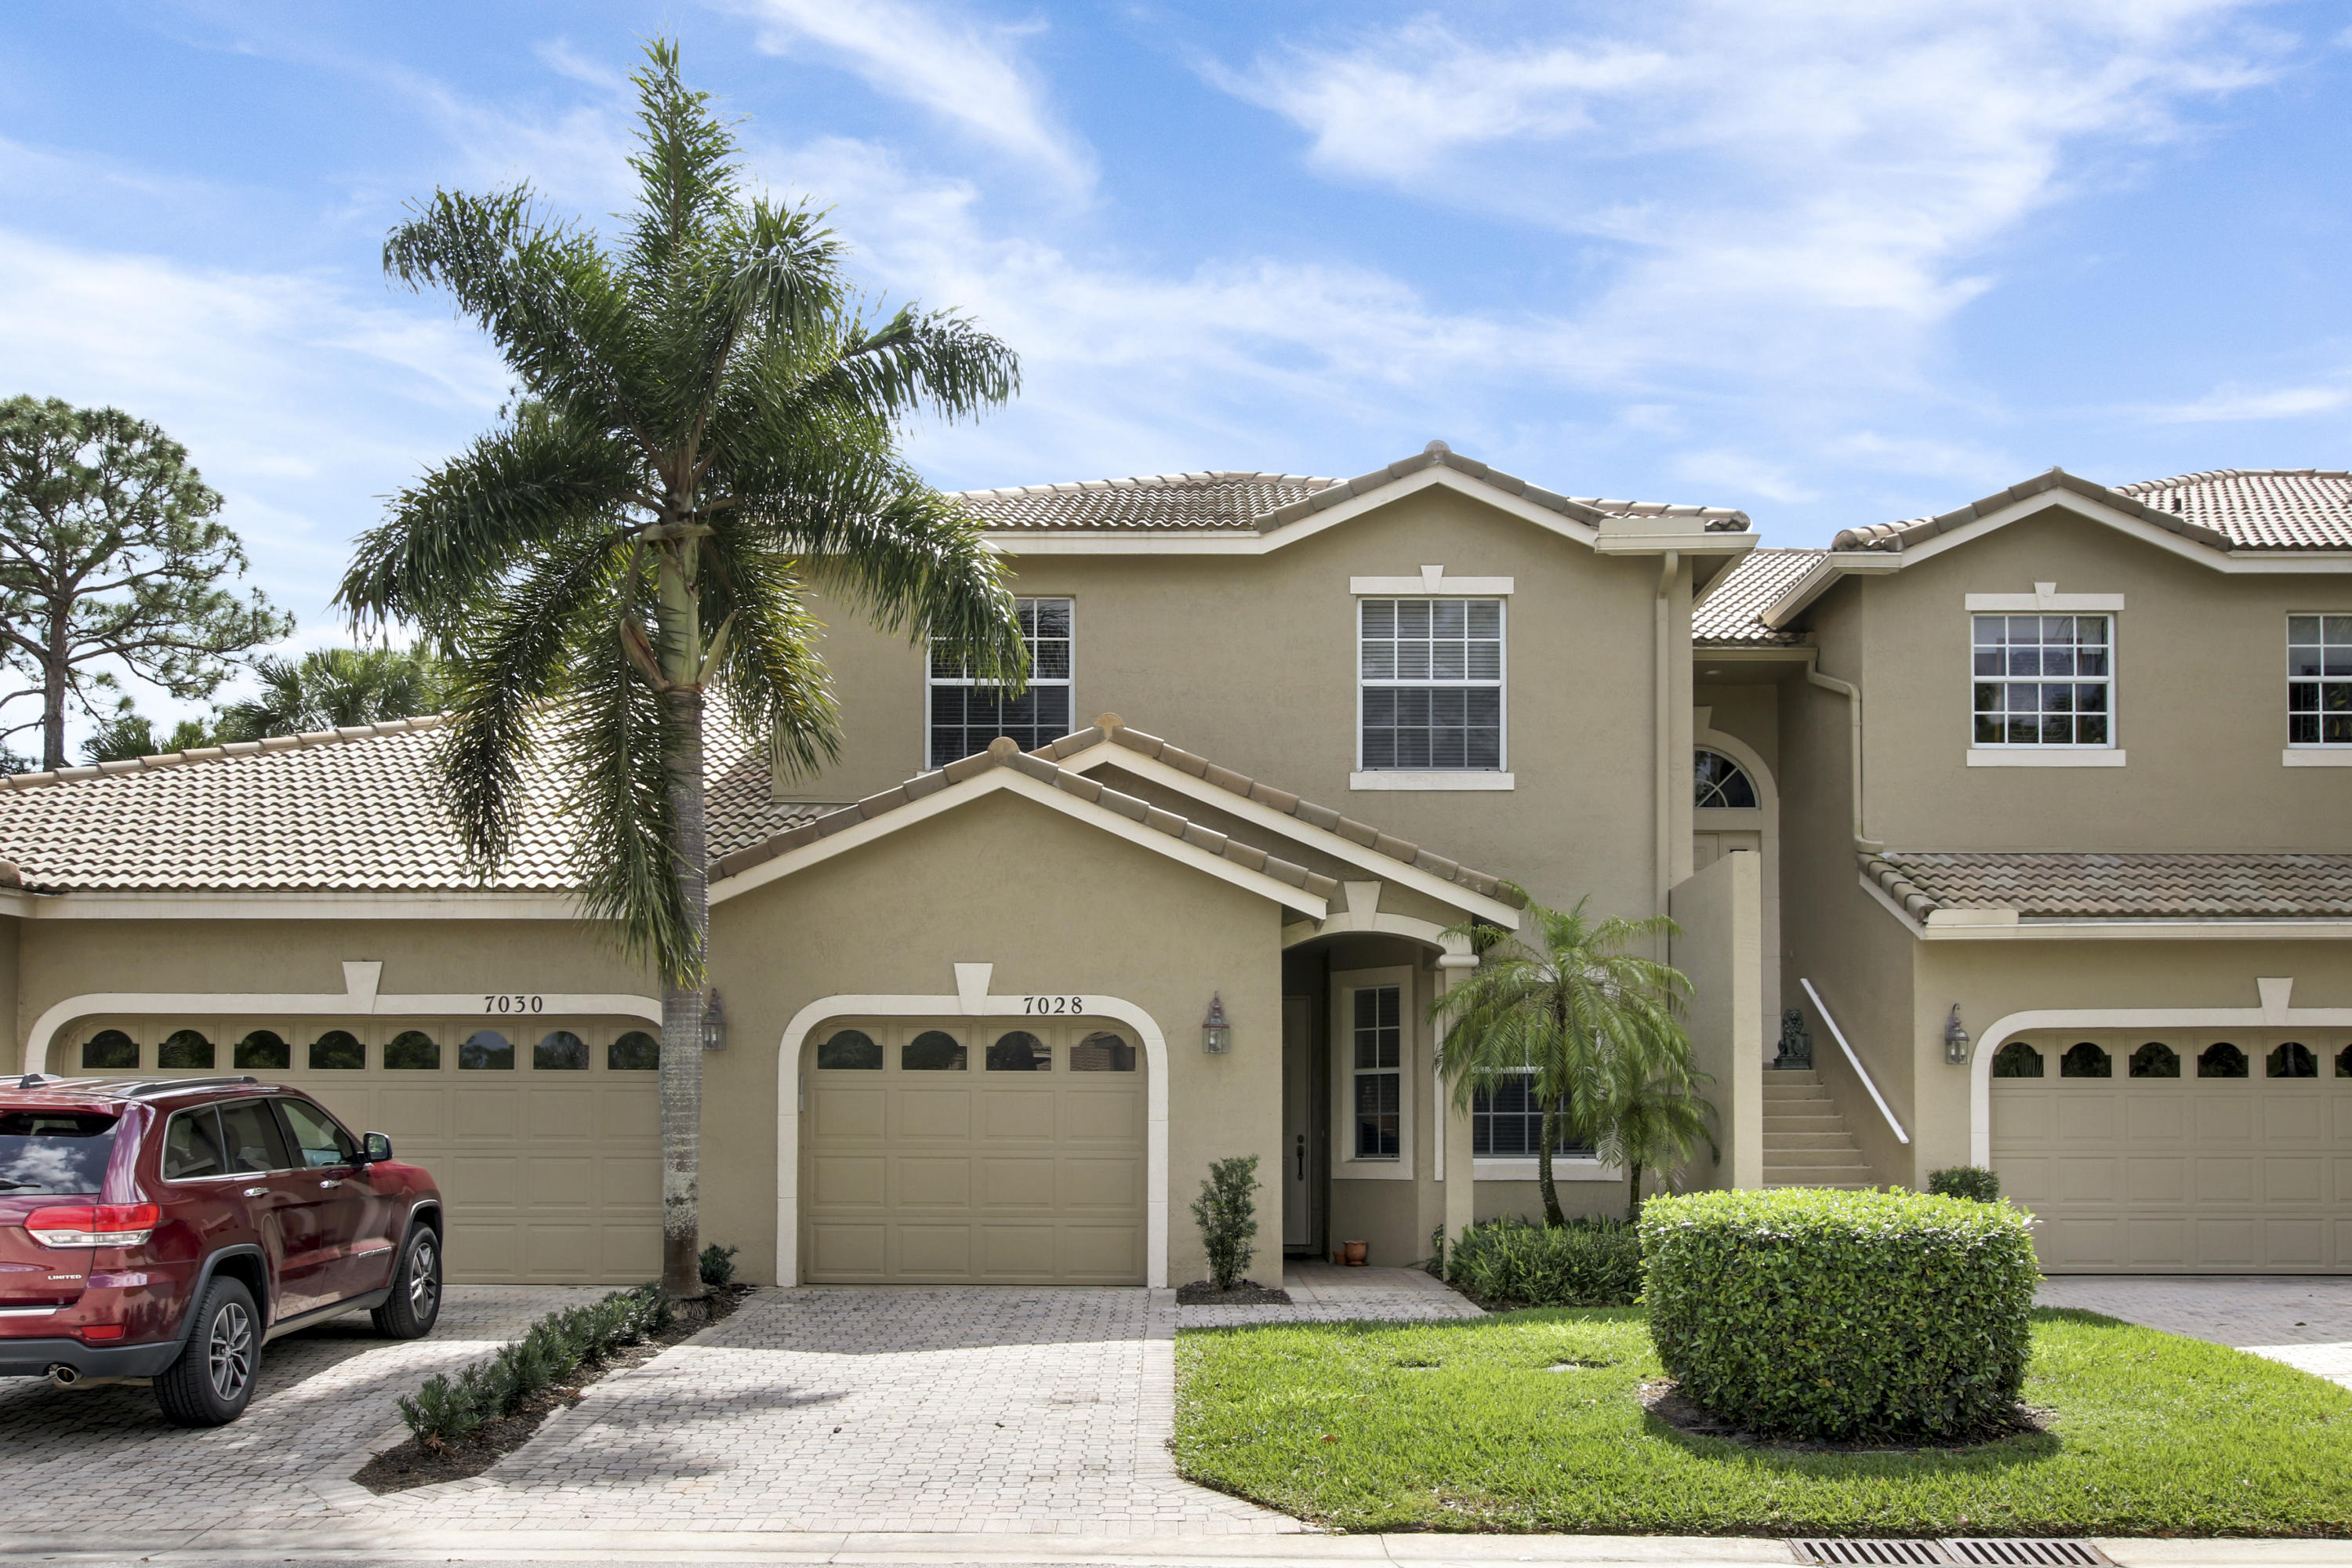 7028 Torrey Pines Circle, Port Saint Lucie, FL 34986